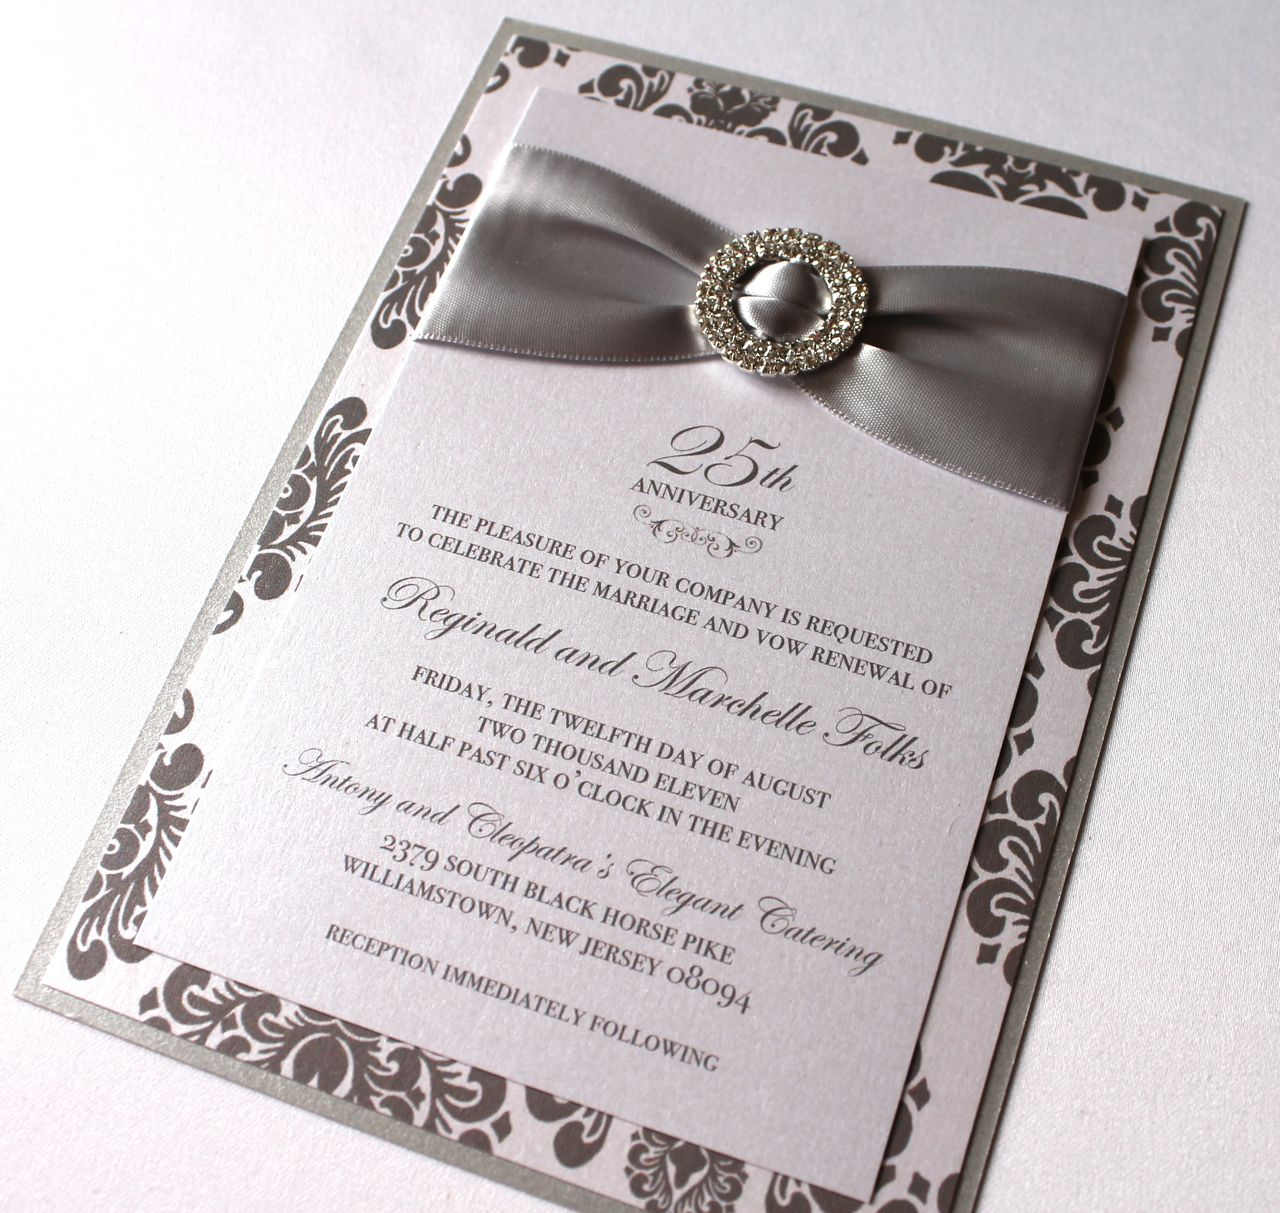 Embellished paperie blog 25th anniversary invitations silver and embellished paperie blog 25th anniversary invitations silver and white damask stopboris Image collections